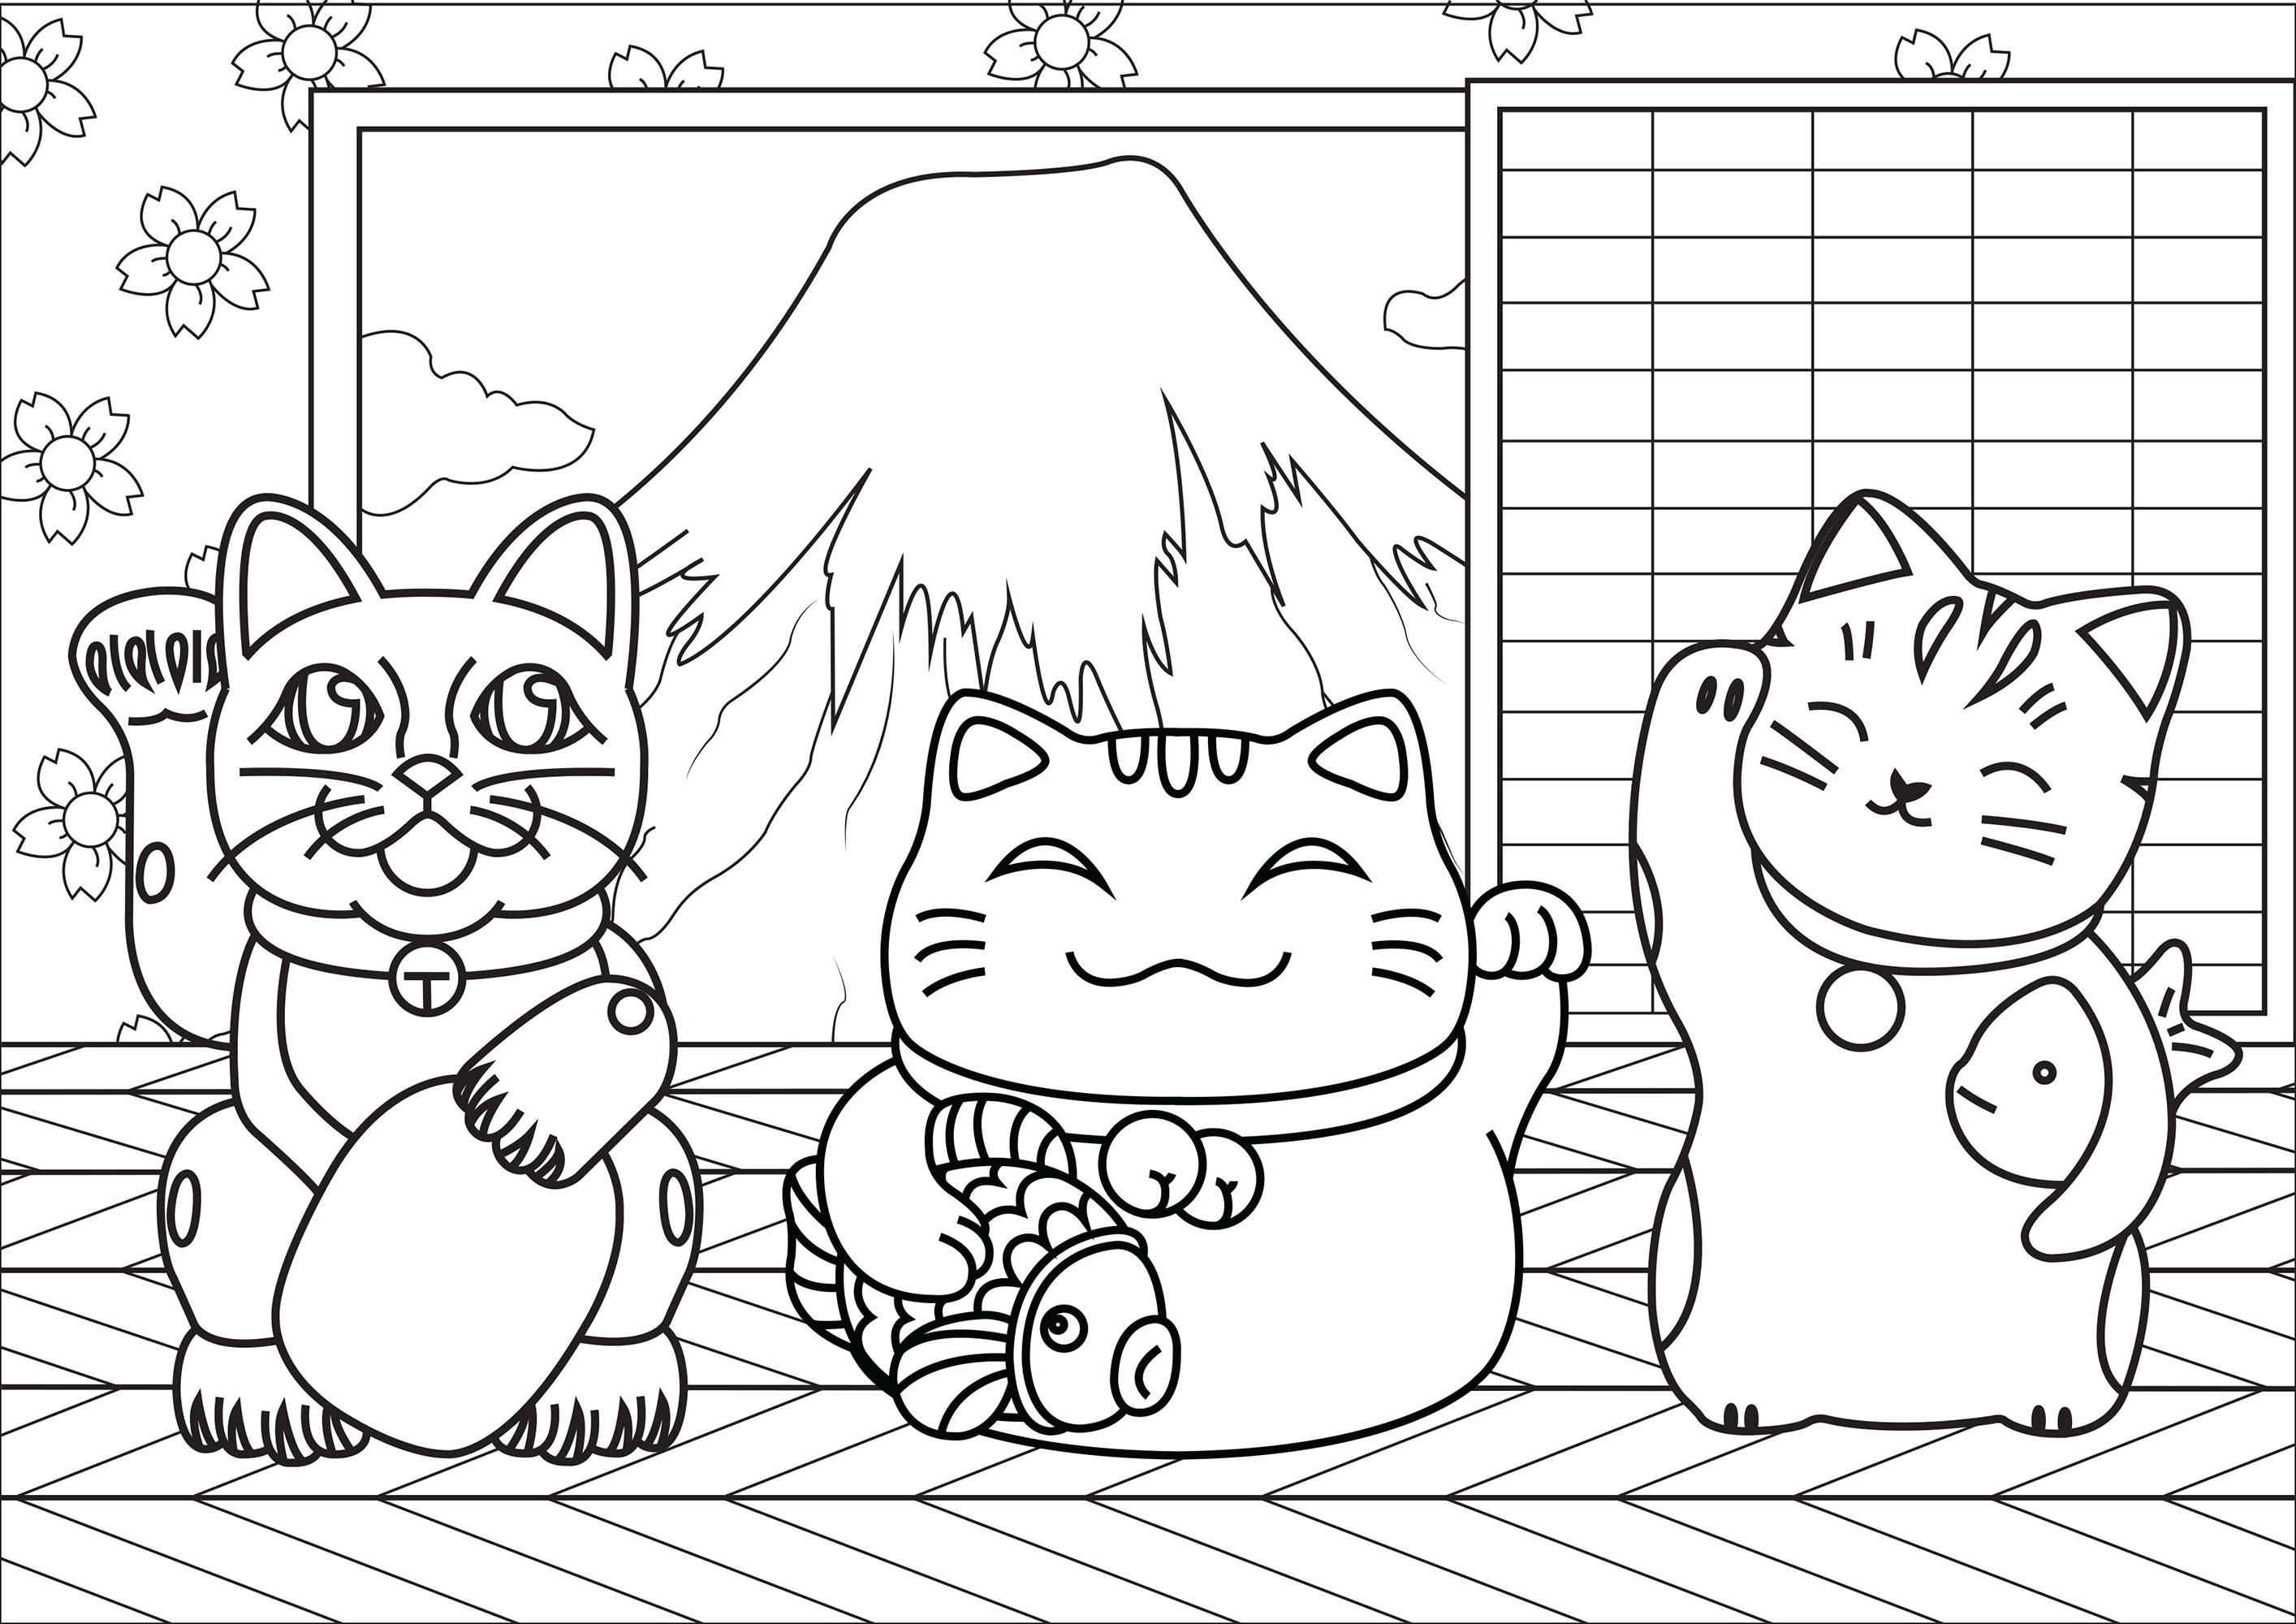 Color these three Maneki Neko cats, who are in a cute house in front of Japan's Mount Fuji